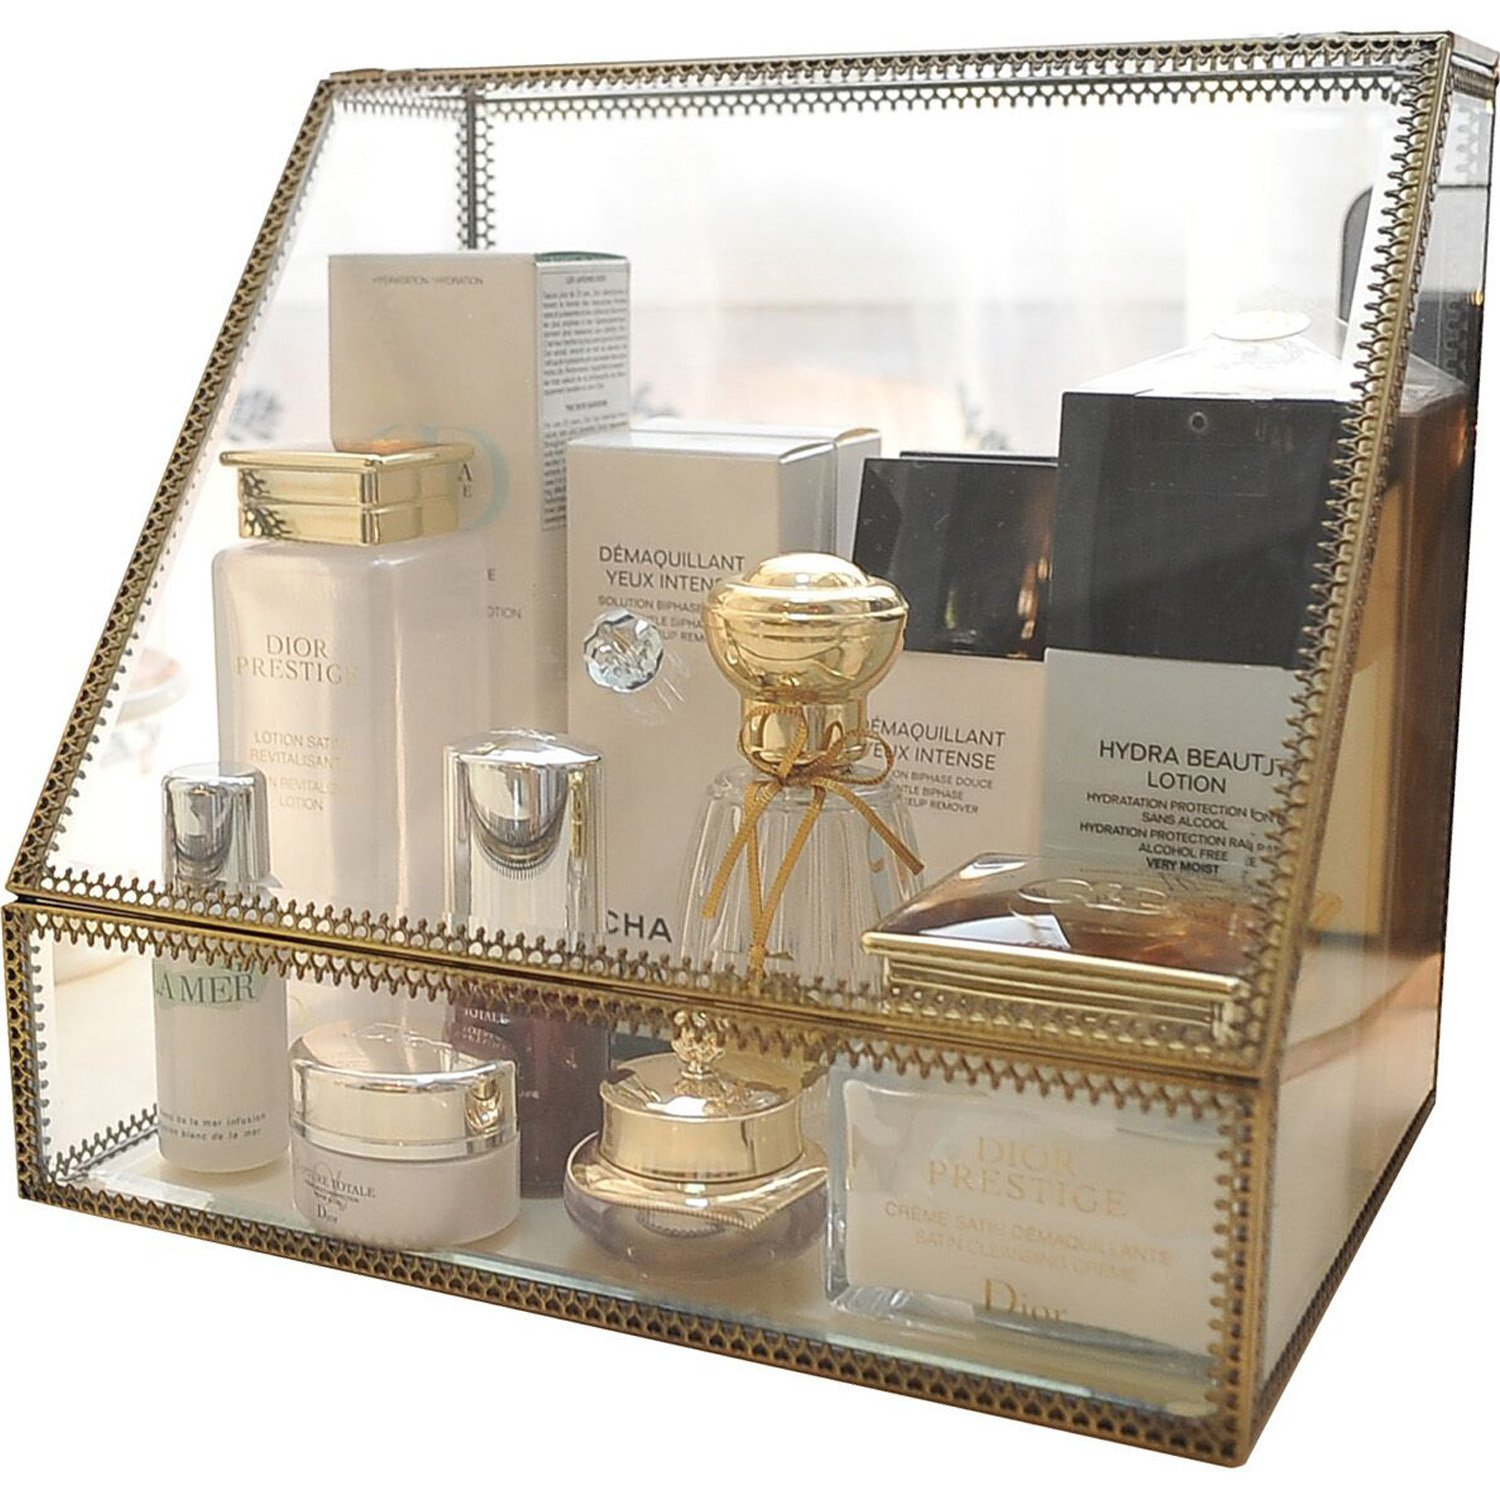 Hersoo Large Cosmetics Makeup Organizer Transparent Bathroom Accessories Storage Glass Display with Slanted Front Open Lid-Cosmetic Stackable Holder for Makeup, Brushes, Perfumes, Skincare